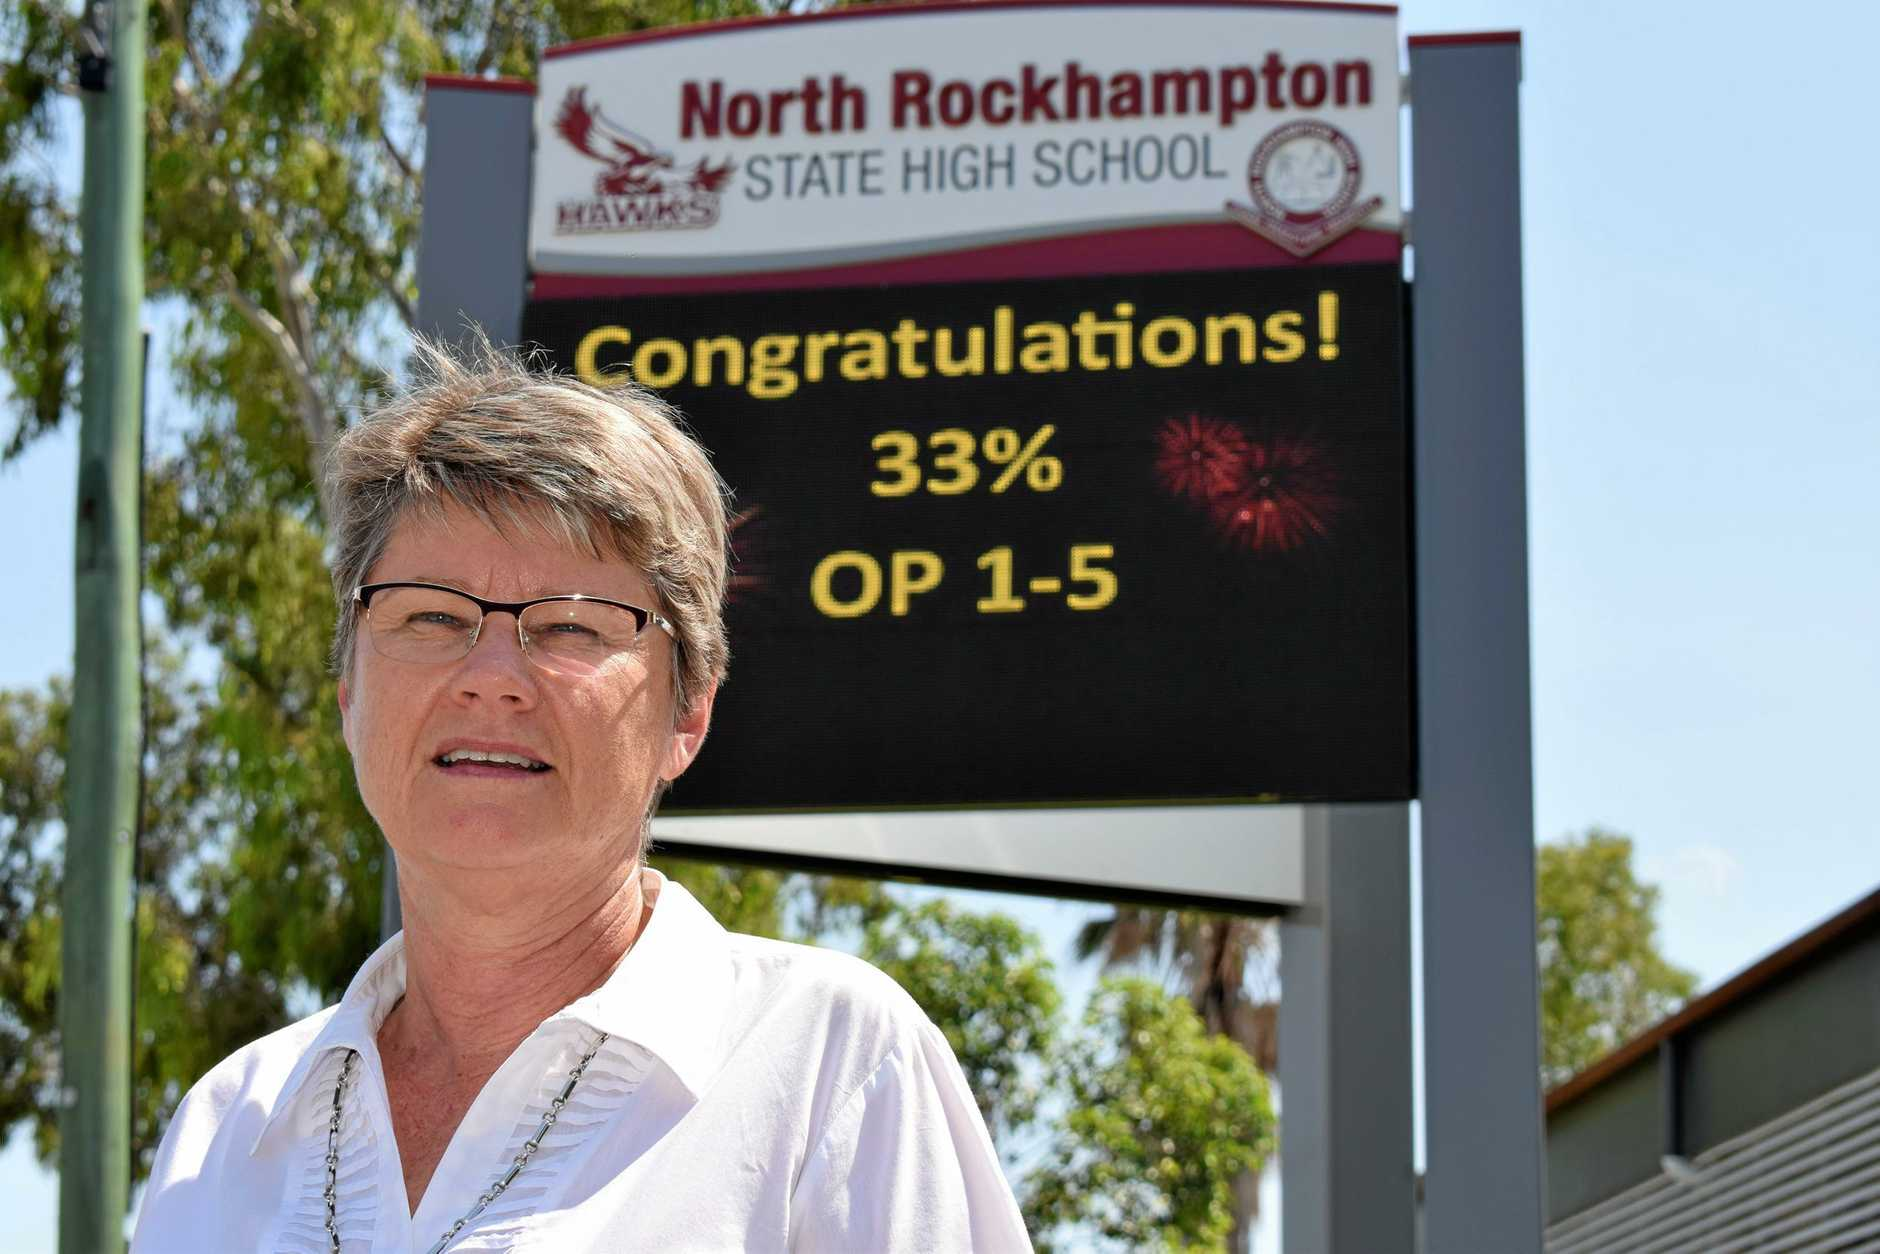 Janet Young, Principal of North Rockhampton State High School is happy after a successful 2018 for students and staff.